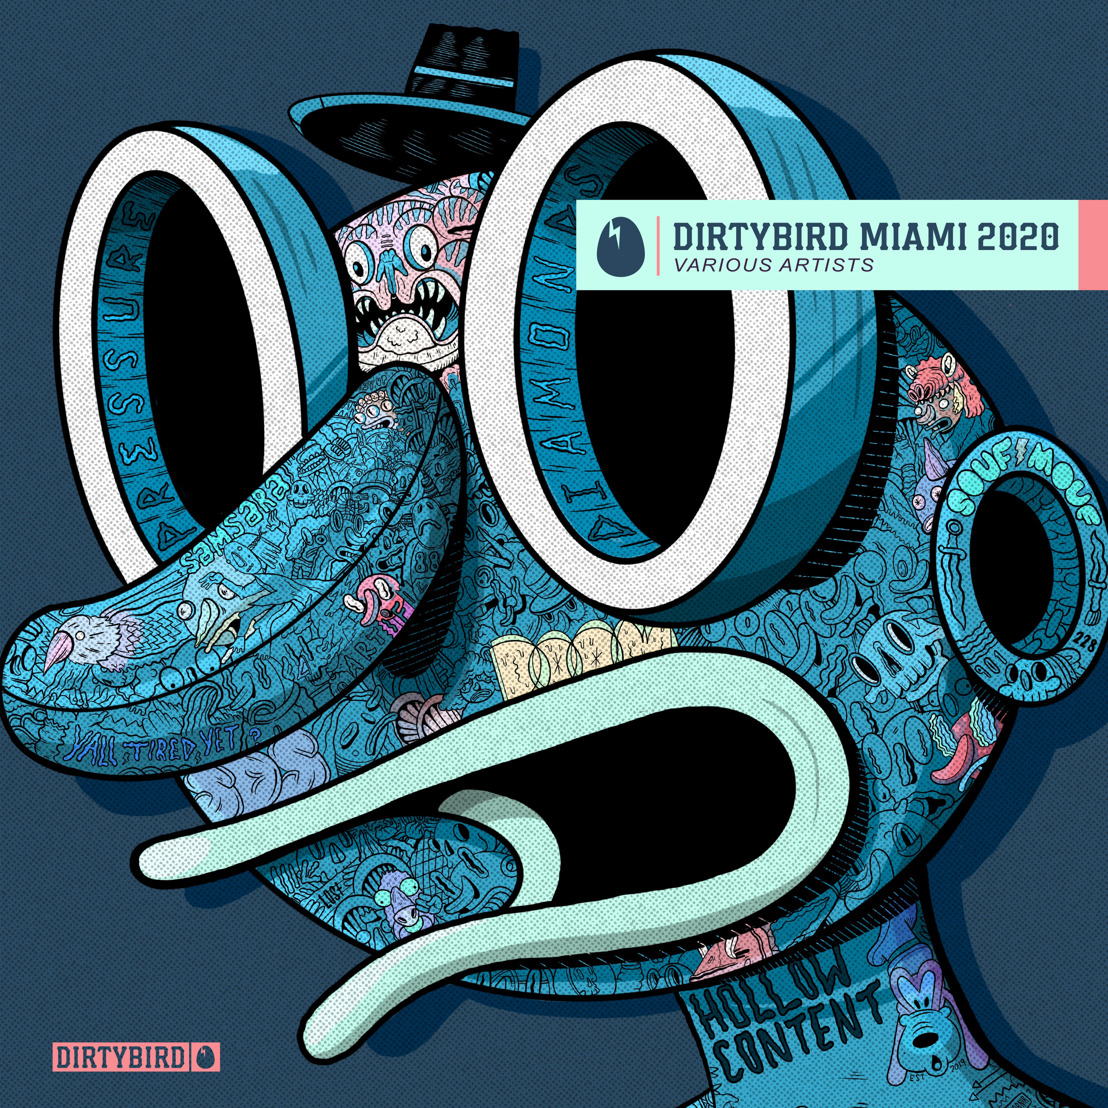 DIRTYBIRD Brings Miami Music Week to your Living Room with 'Miami 2020' Compilation